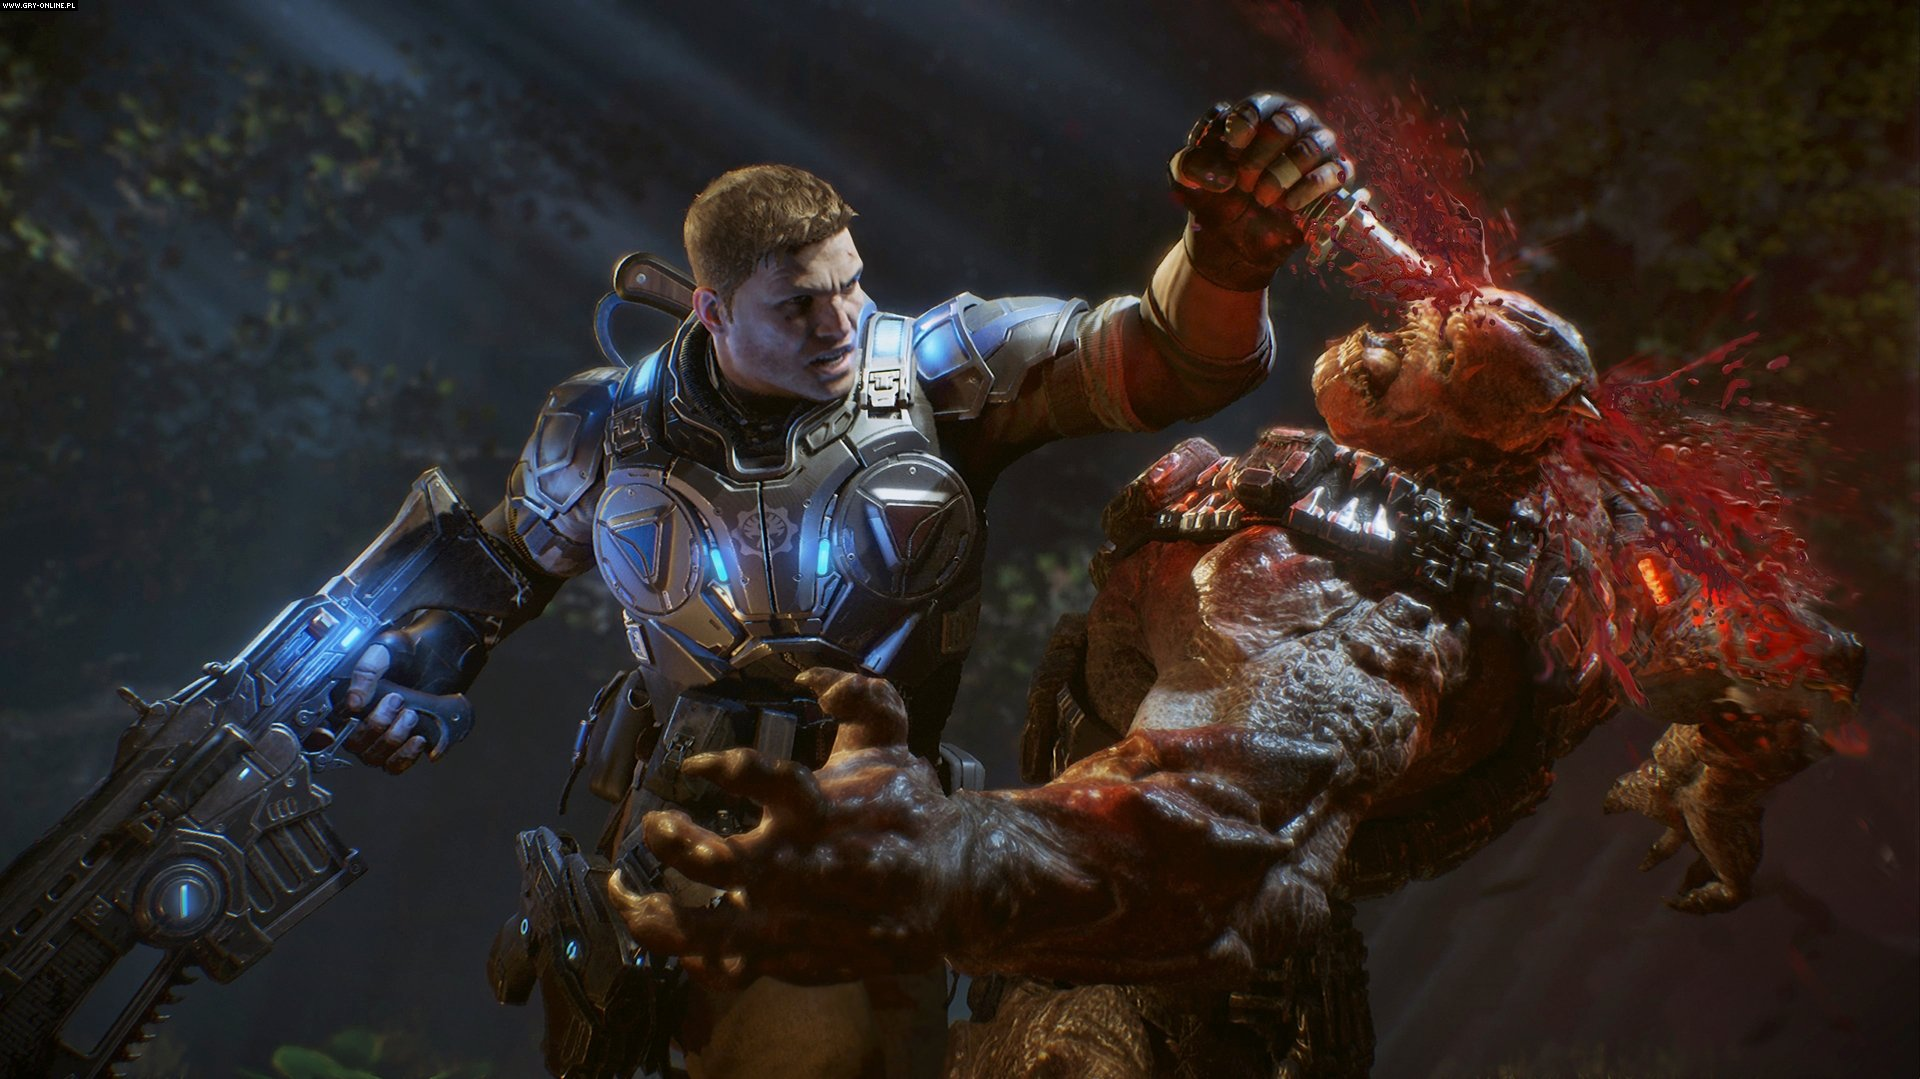 Gears of War 4 XONE Games Image 17/32, The Coalition, Microsoft Studios